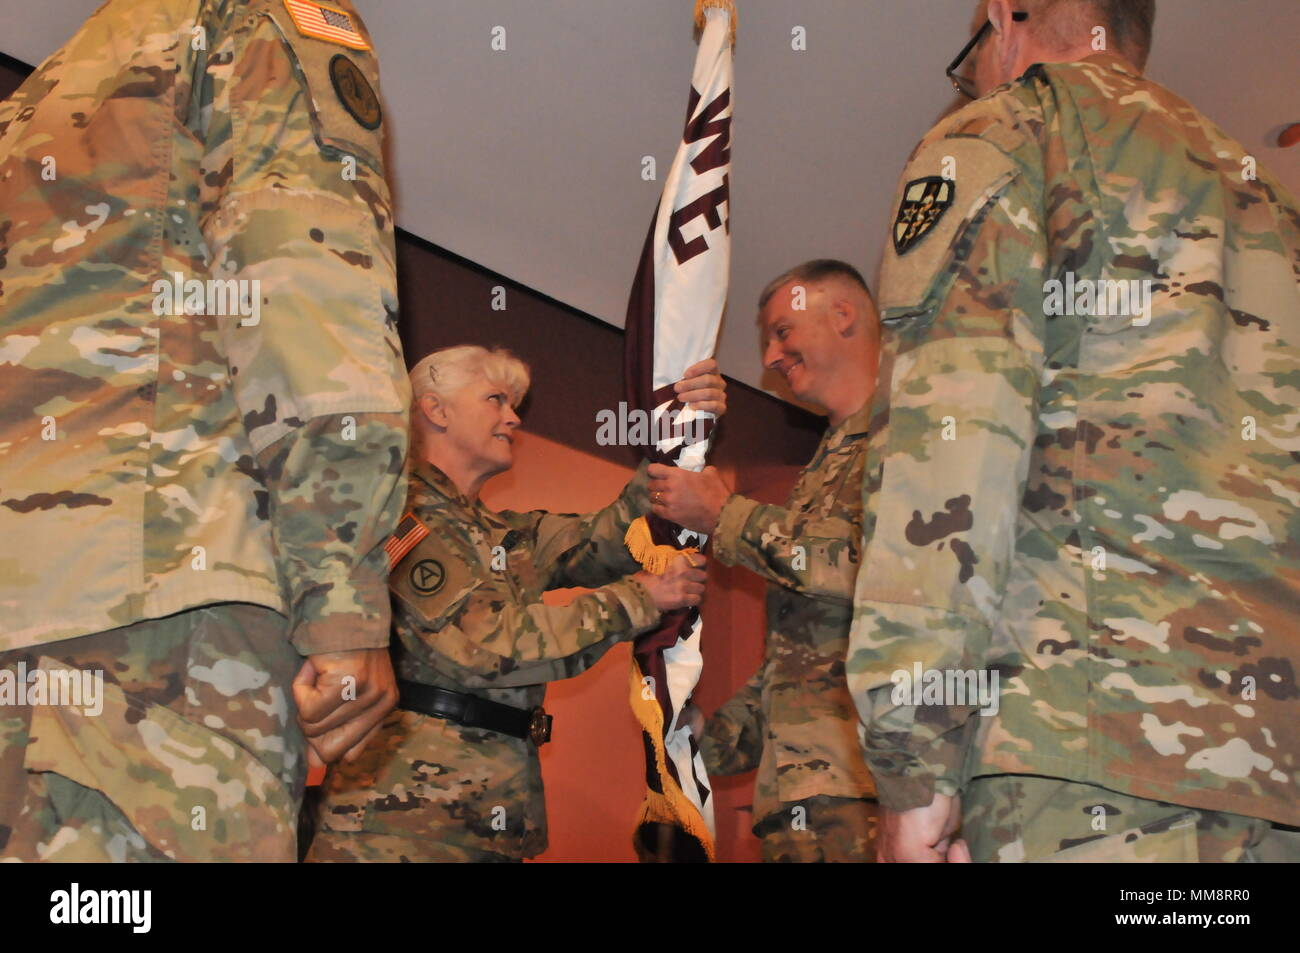 The change of command is a traditional event rich with symbolism and heritage. Here Maj. Gen. Mary Link, commander of Army Reserve Medical Command gives the unit colors of Western Medical Area Readiness Support Group to Col. Thad Collard, who is now the commander for the next two years of WE MARSG in San Pablo, California with units in Arizona, Colorado, New Mexico, Nevada, Montana, Washington and California. The change of command happened the 10th of September, 2017. - Stock Image